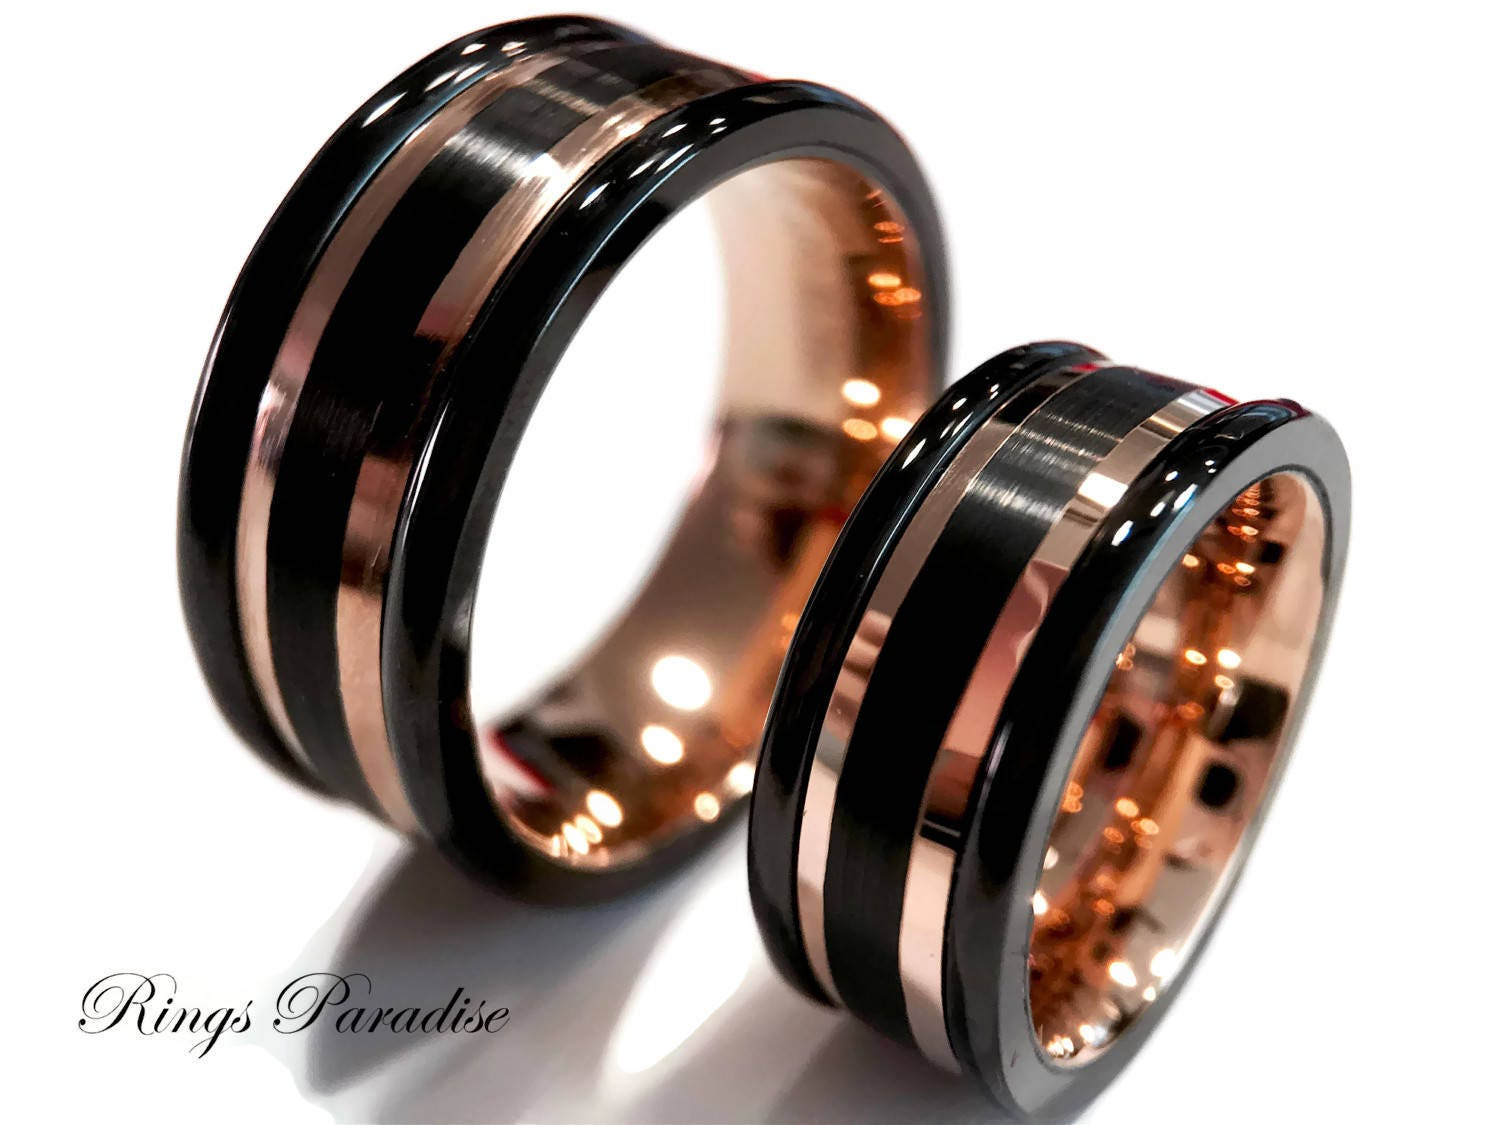 50: Western Style Wedding Rings Tungsten At Websimilar.org